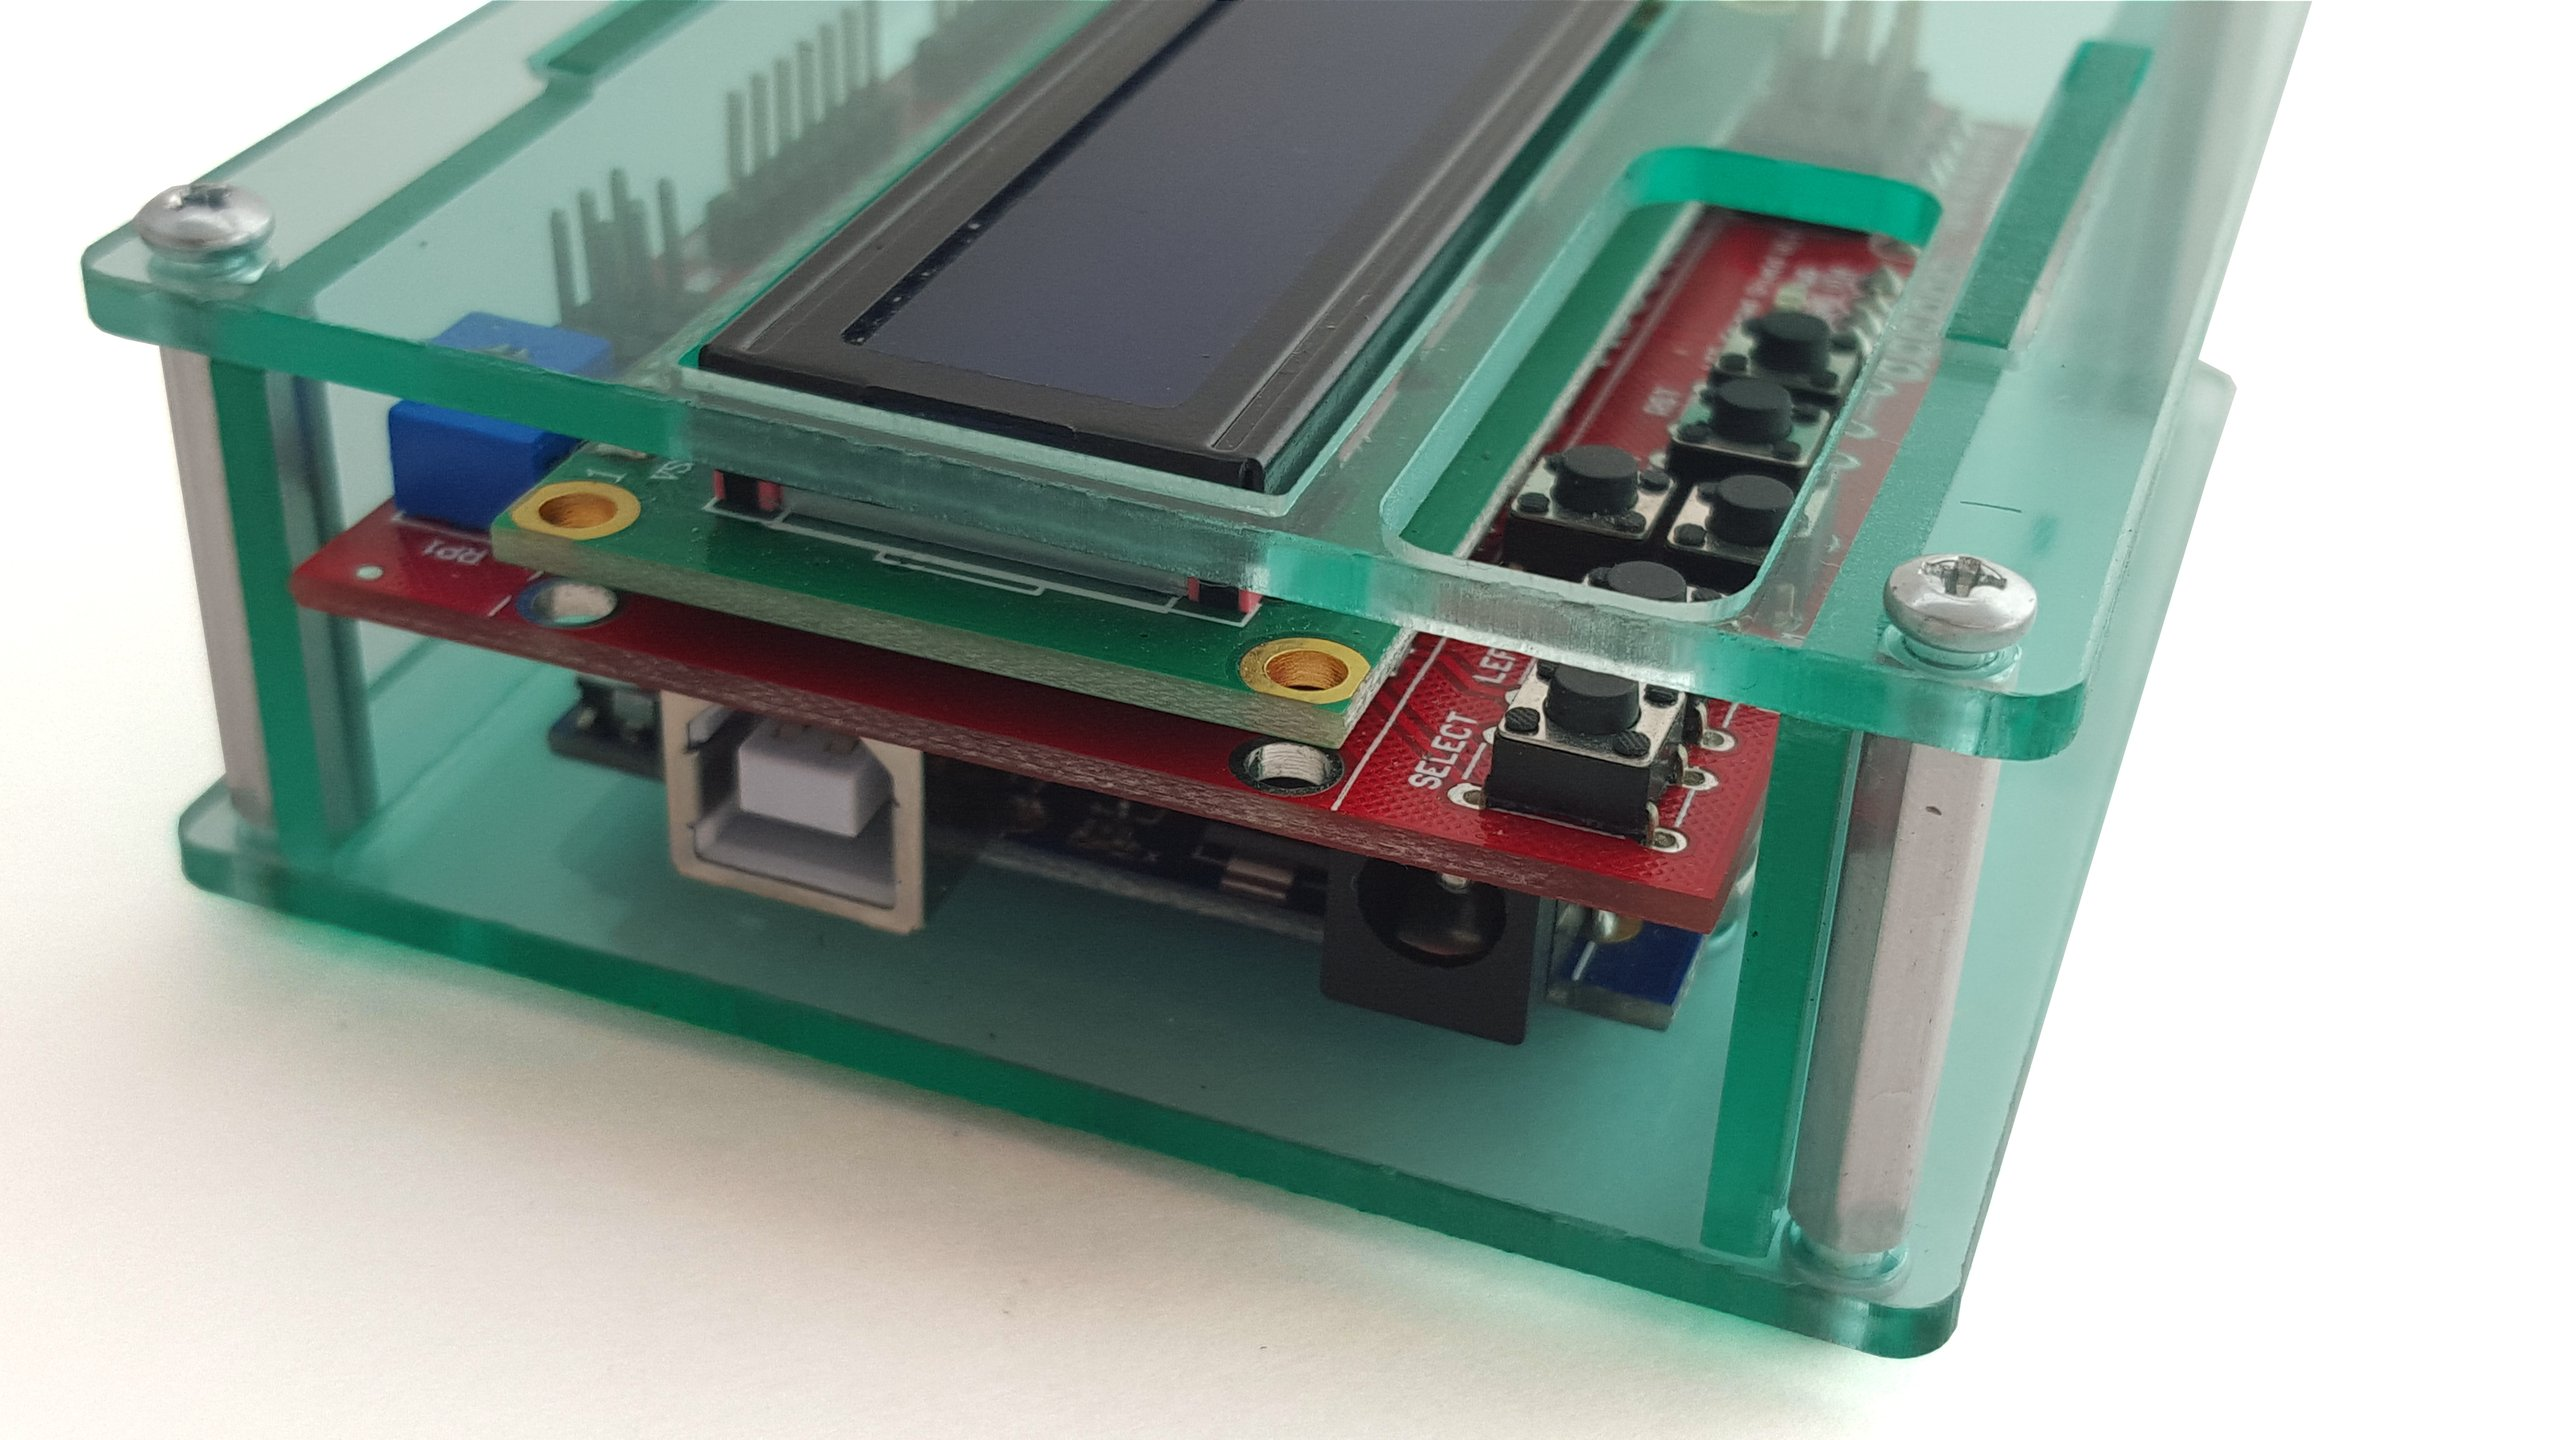 Acrylic enclosure for arduino uno and lcd from mjrice